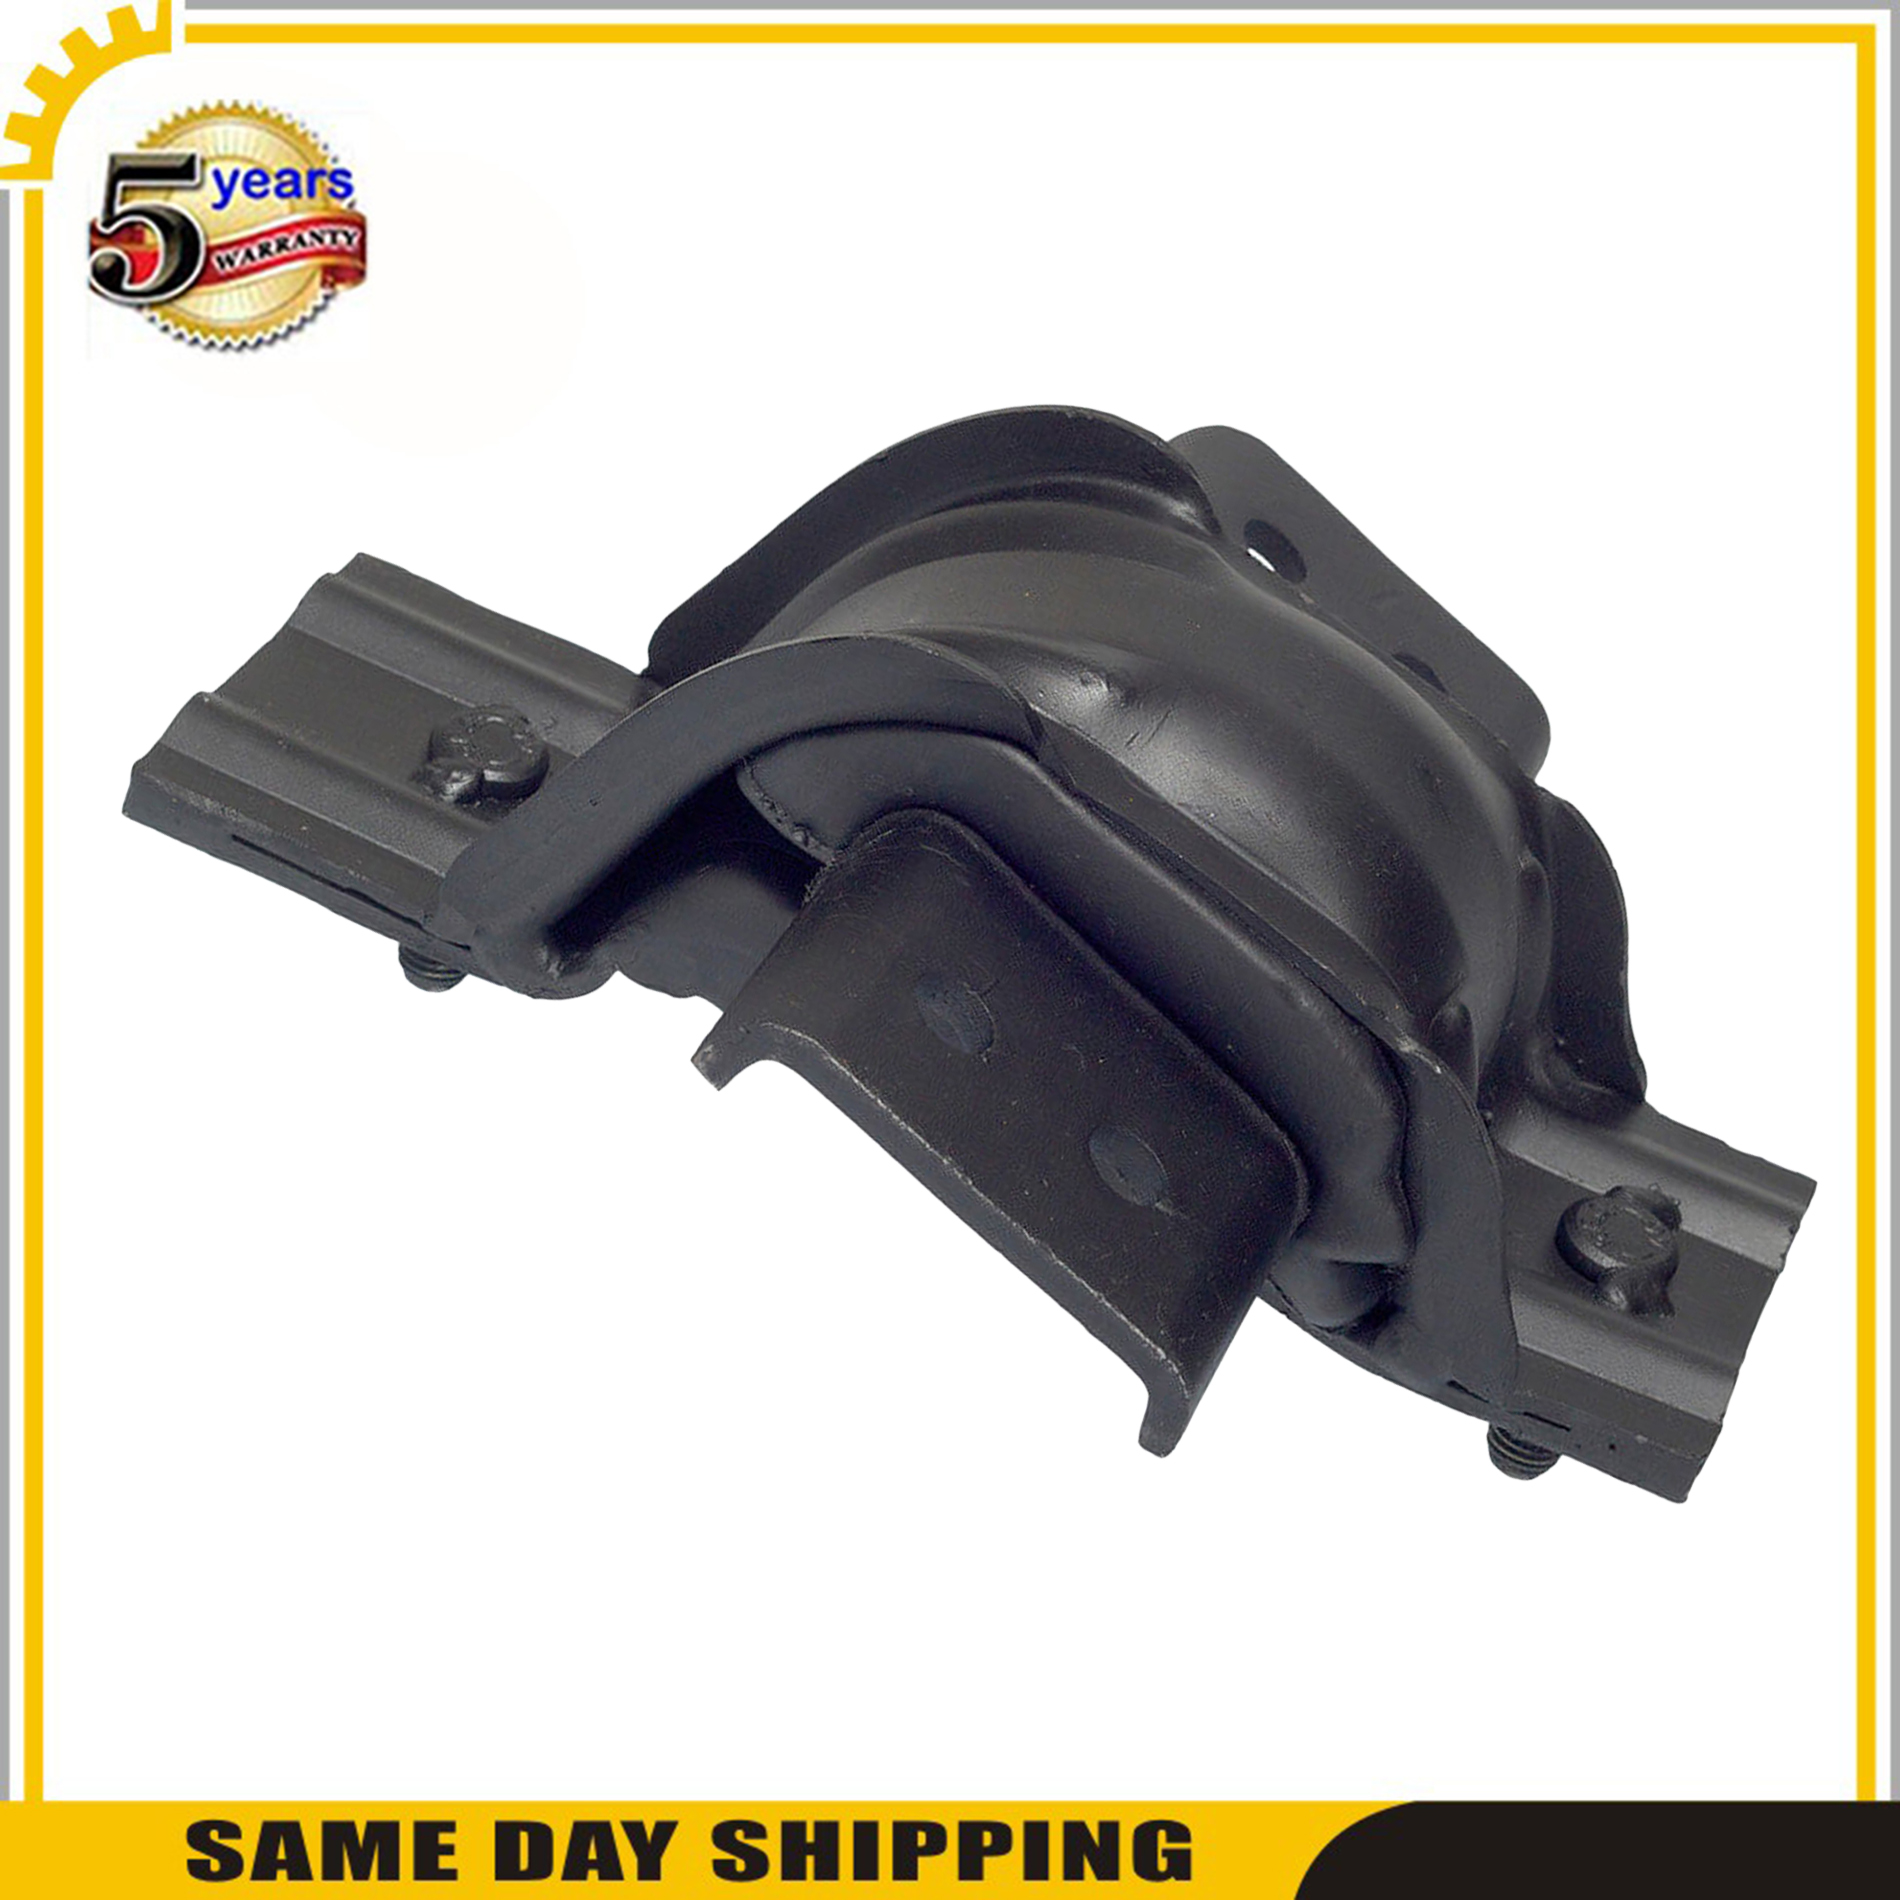 Ford F250 F350 F450 F550 Super Duty 7.3 99-03 Front For Front Engine Motor Mount